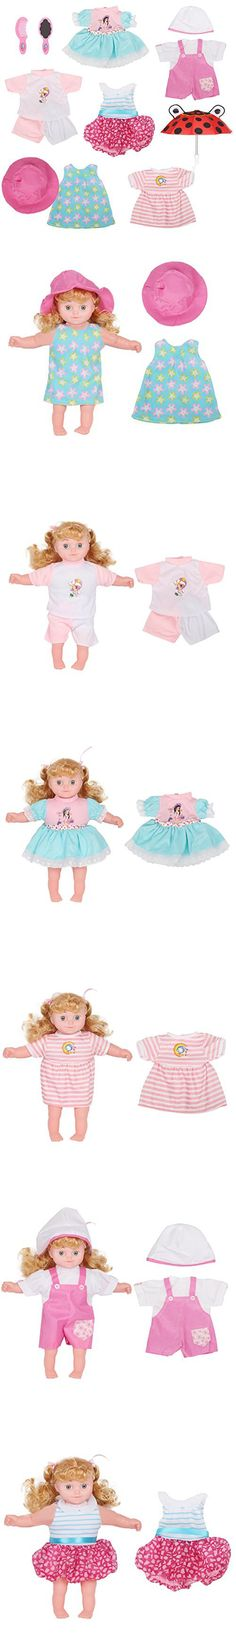 Set of 6 Baby Doll Clothes Dress Outfits Costumes For 14-16 Inch Dolly Beautiful Darbie Doll Cloth Accessories Umbrella Comb Mirror Hat Girl Christmas Birthday Gift